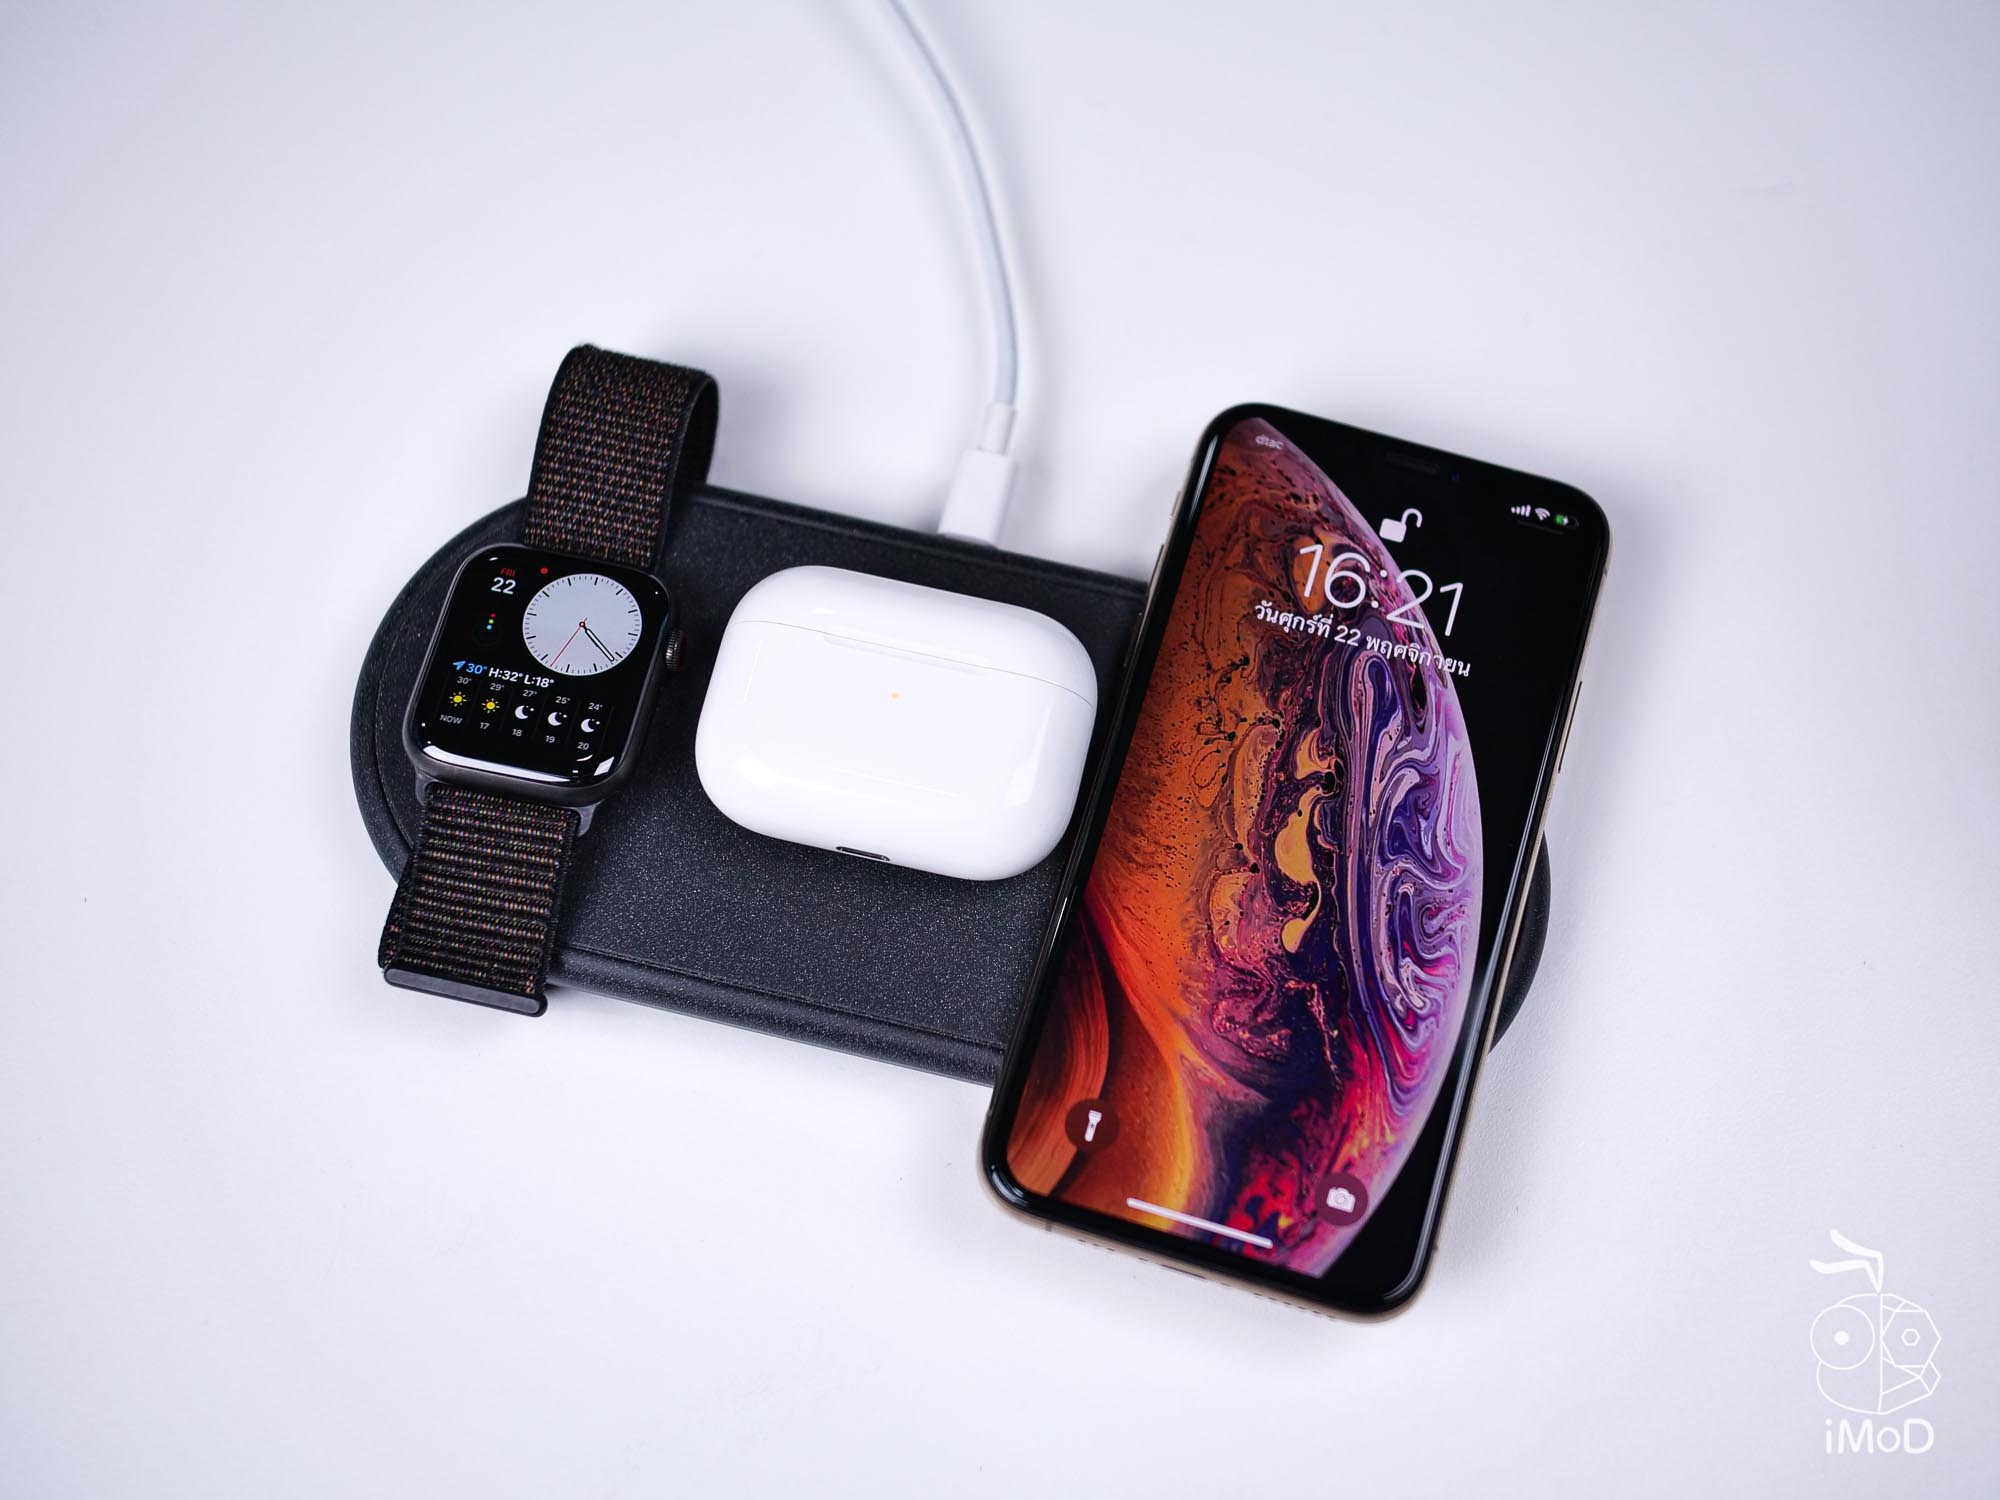 Apple Watch Series 5 Airpods Pro Iphone Xs On Charging Pad 1014527